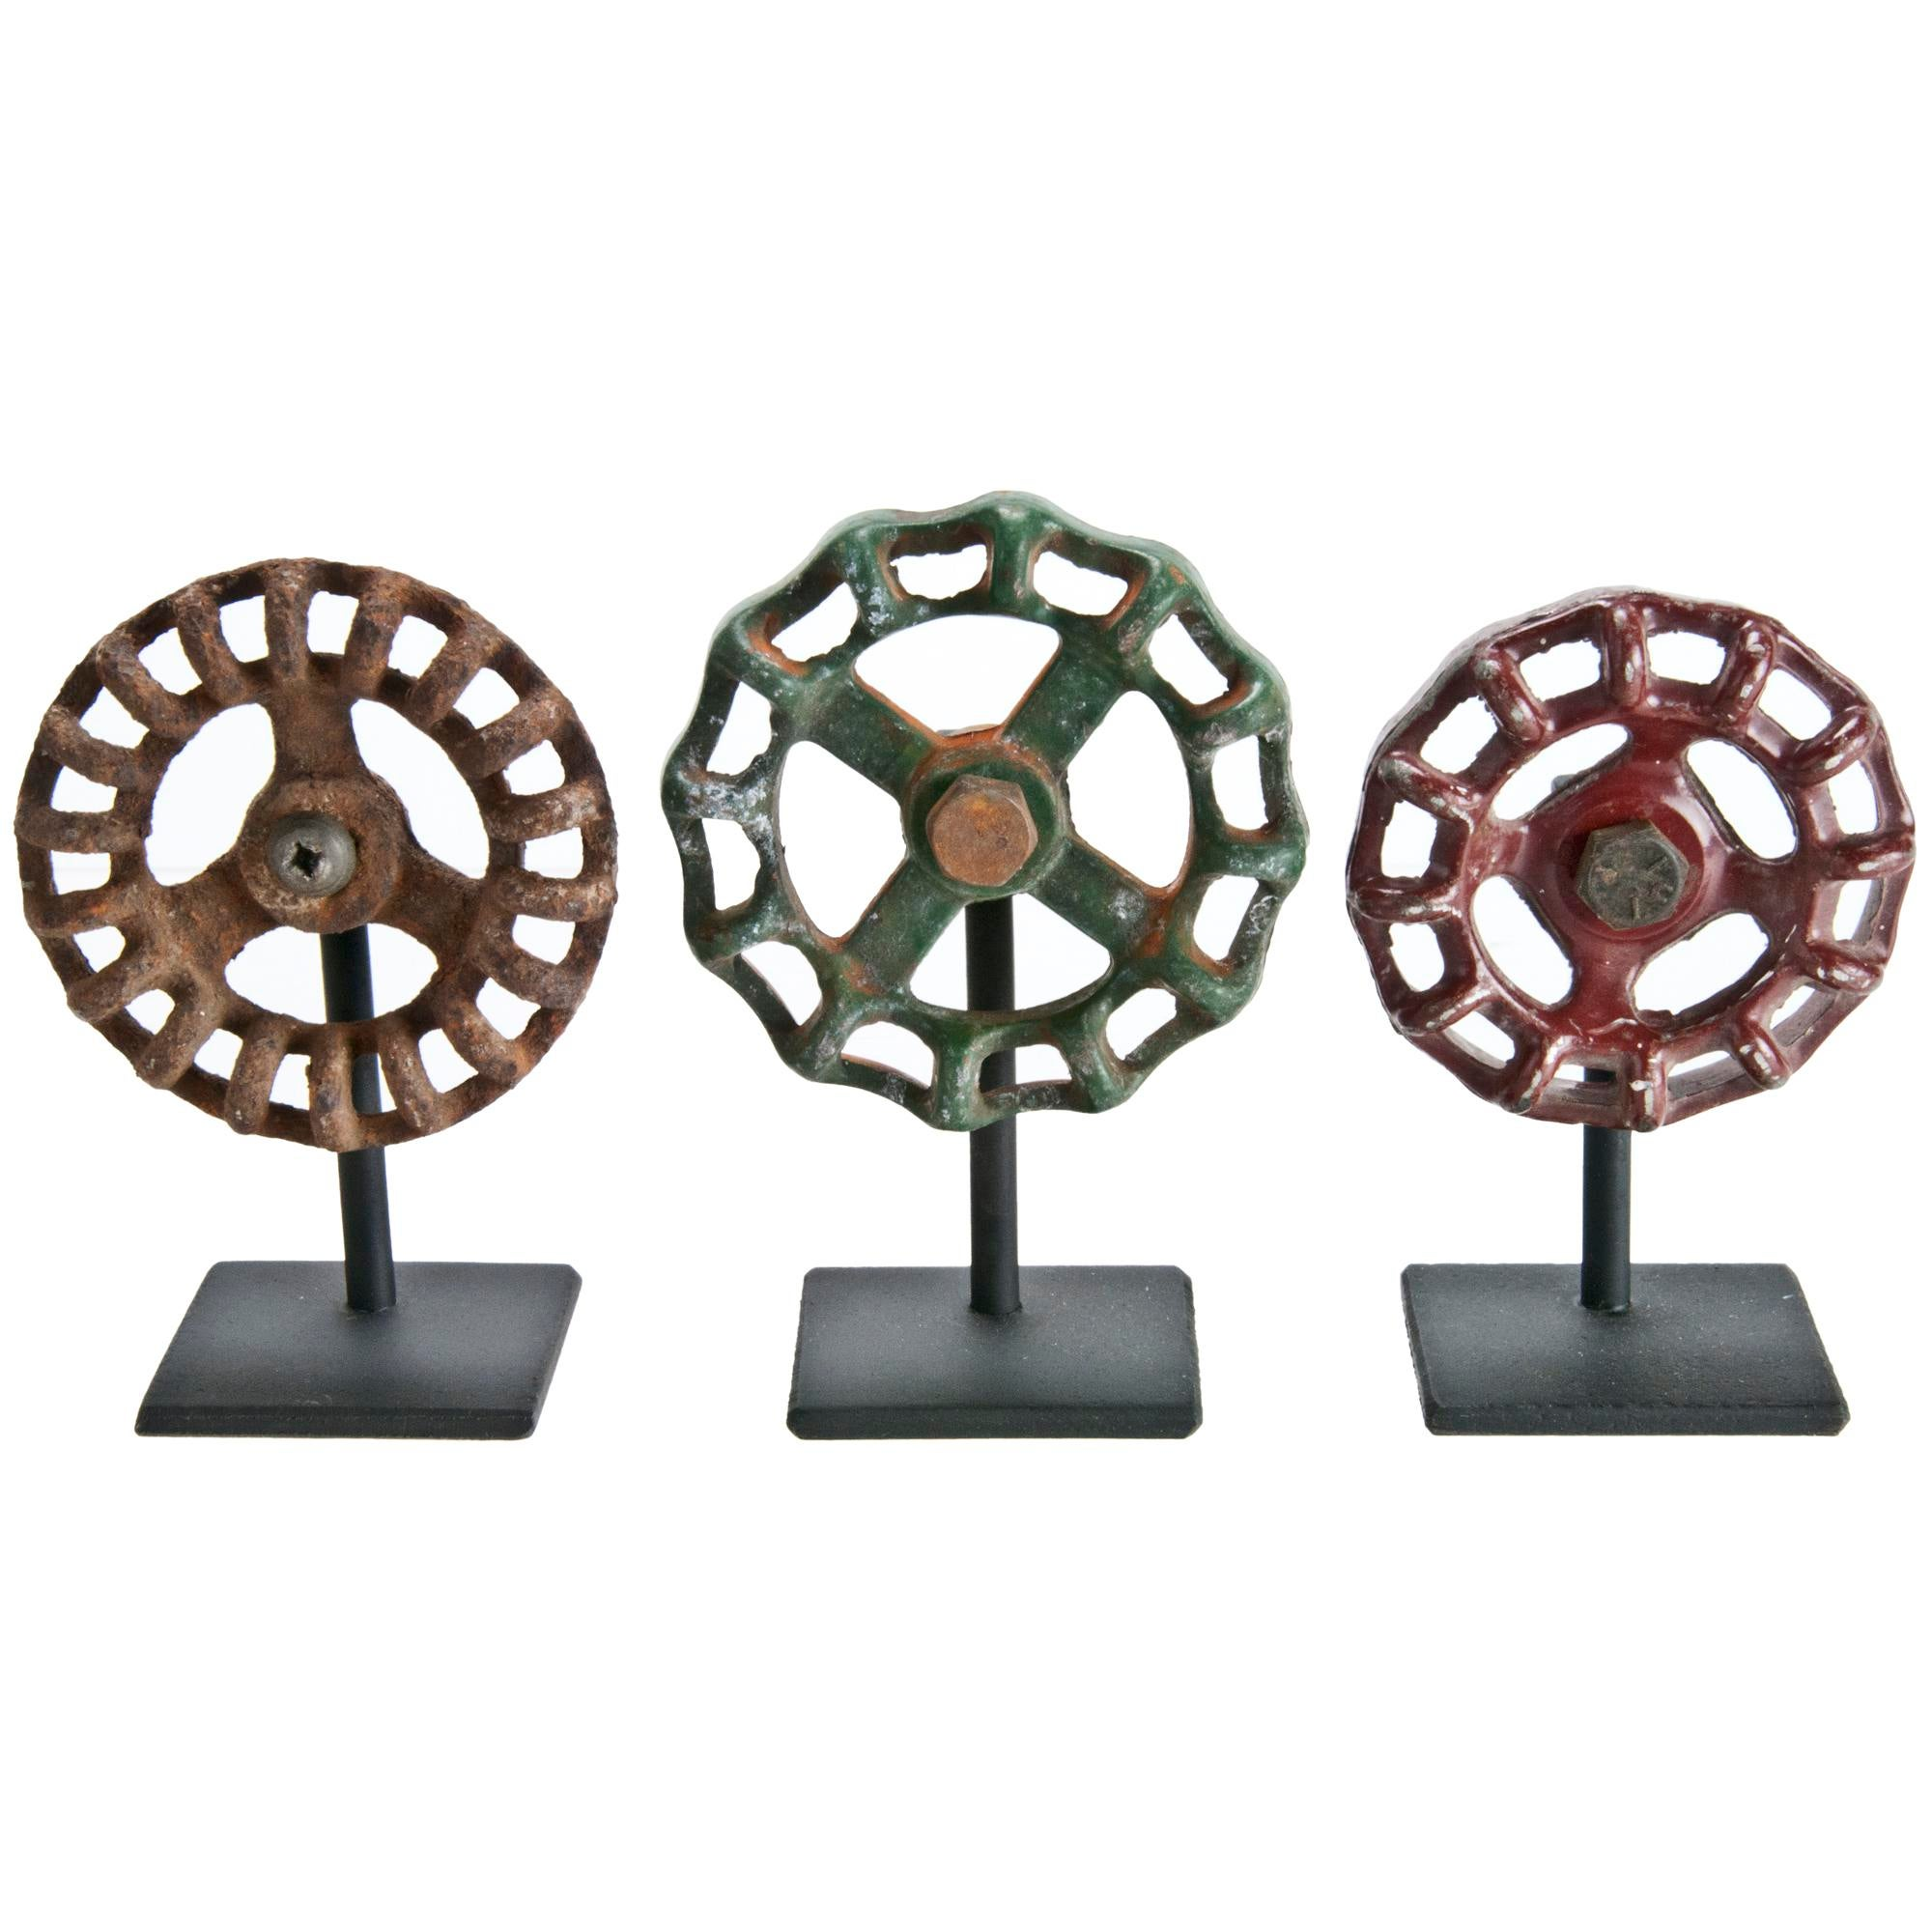 Rustic Valve Handles On Iron Stands - Set of 3 | Chairish